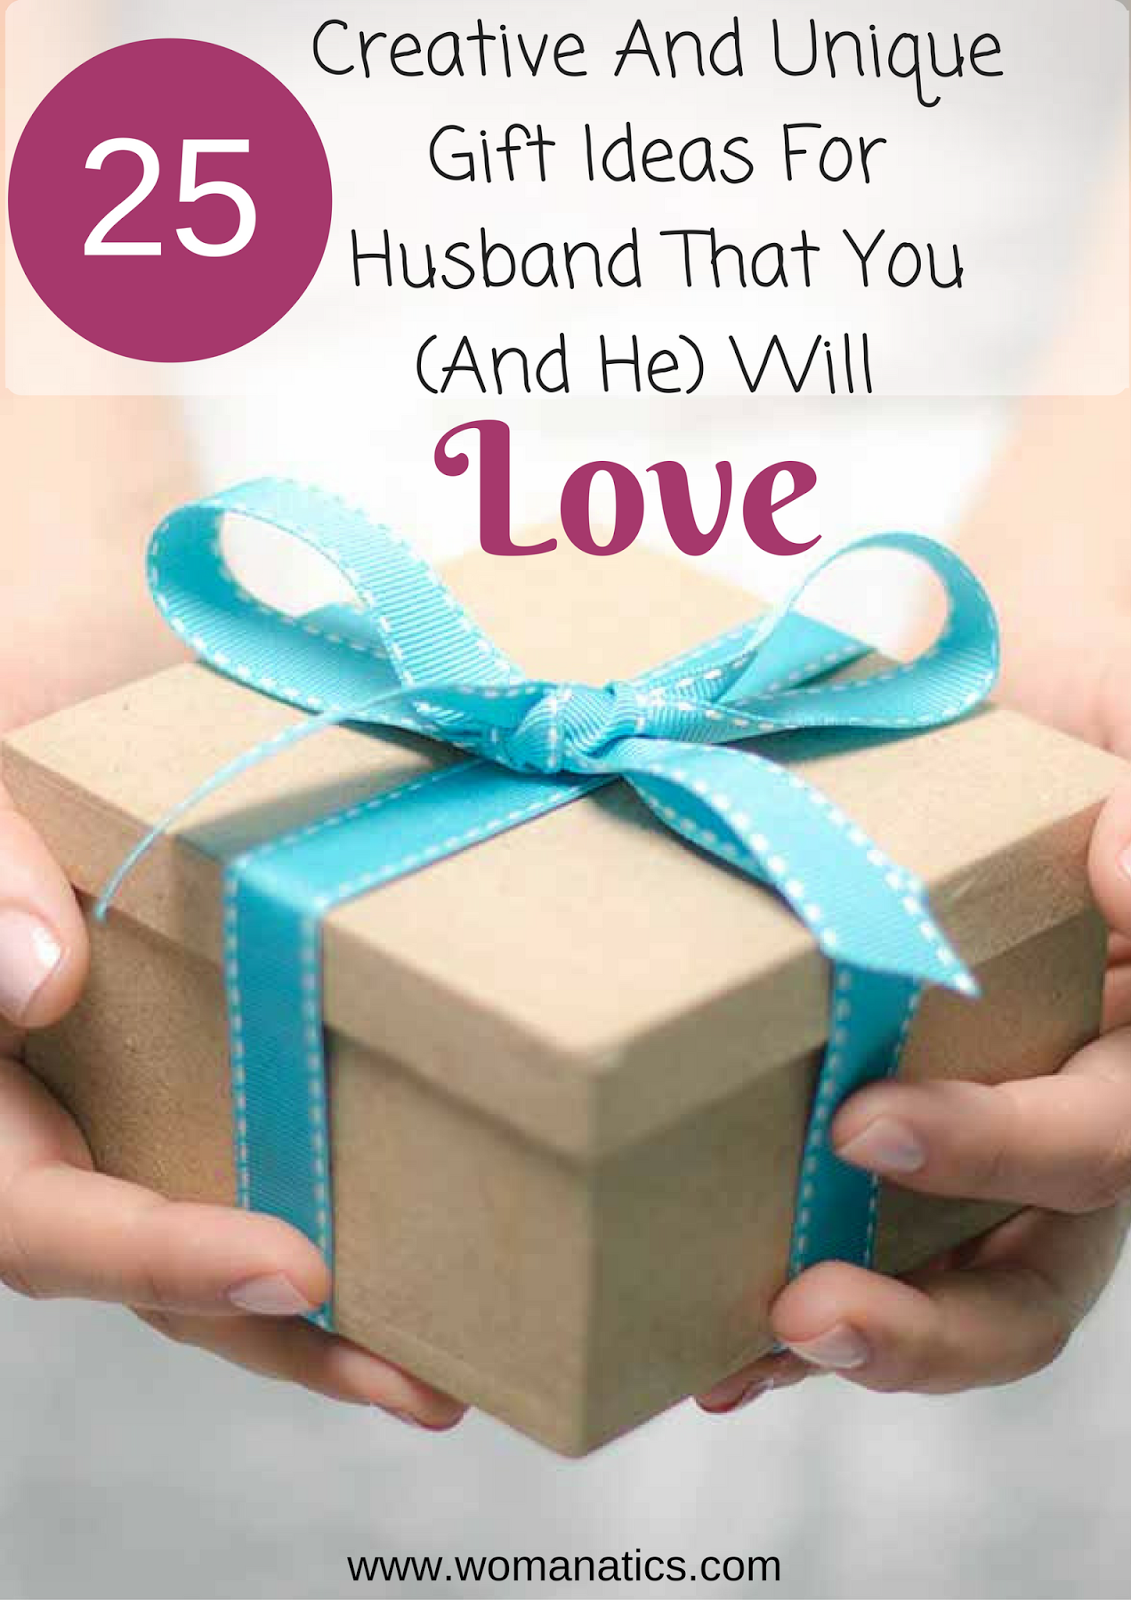 25 creative and unique gift ideas for husband s birthday that you